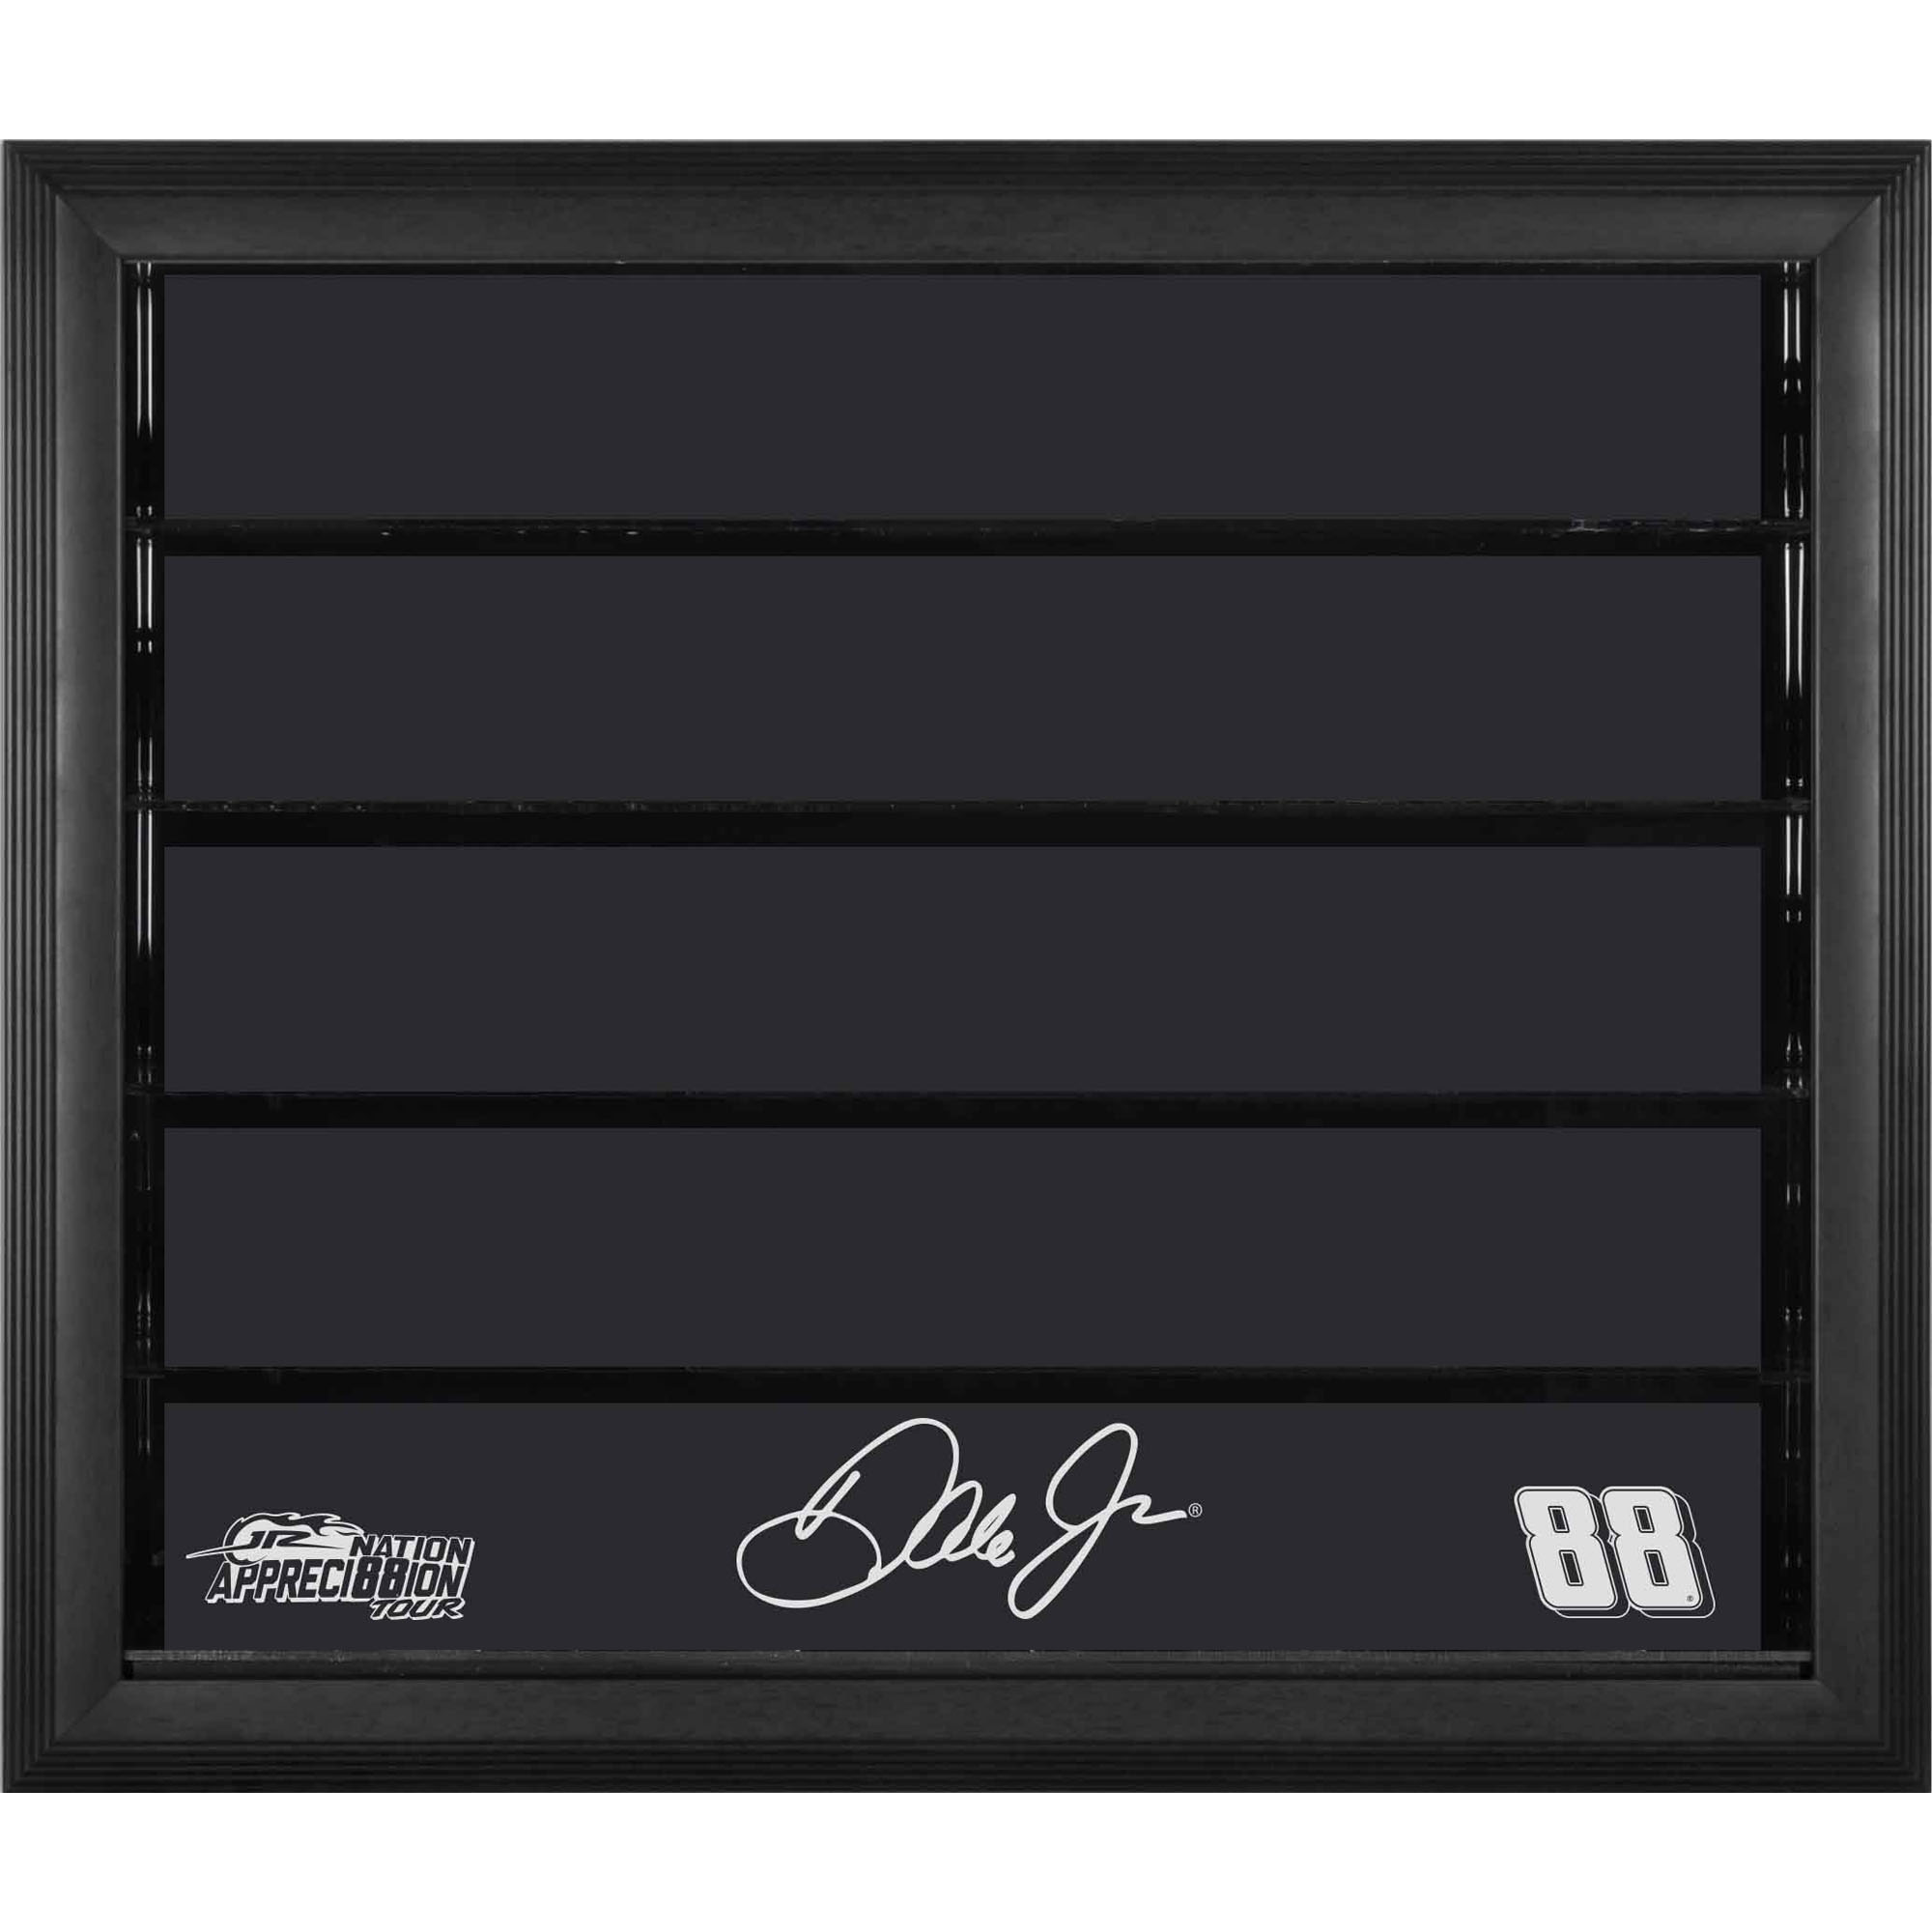 Dale Earnhardt Jr. Fanatics Authentic #88 Black Frame 10 Car 1/24 Scale Die Cast Display Case with JR Nation Appreci88ion Logo - No Size